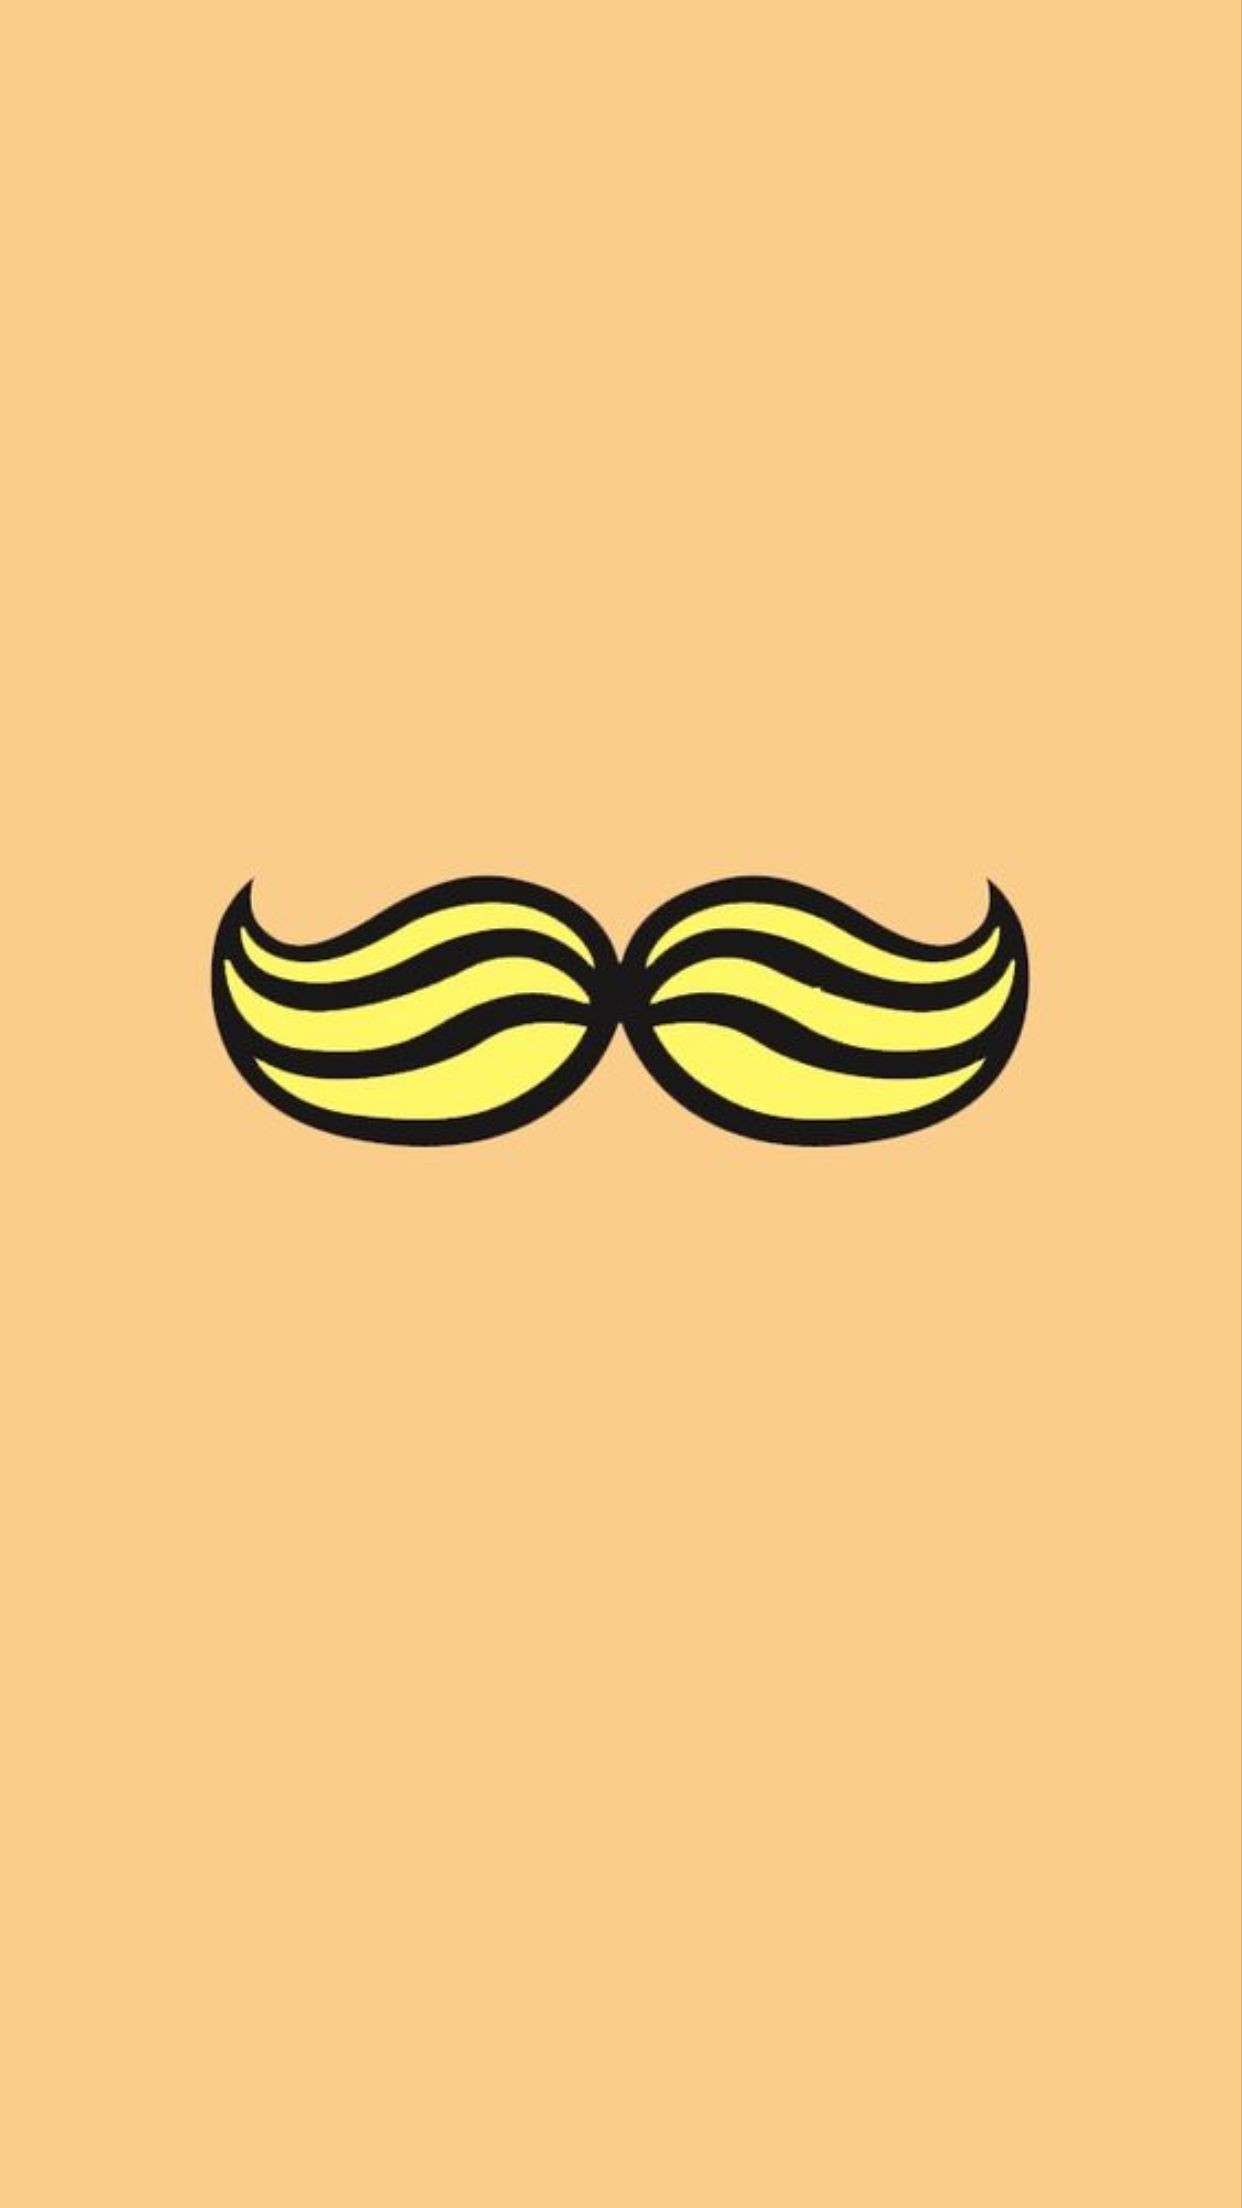 1242x2208 Awesome Mustache Wallpapers for Phones and Walls Mens Stylists